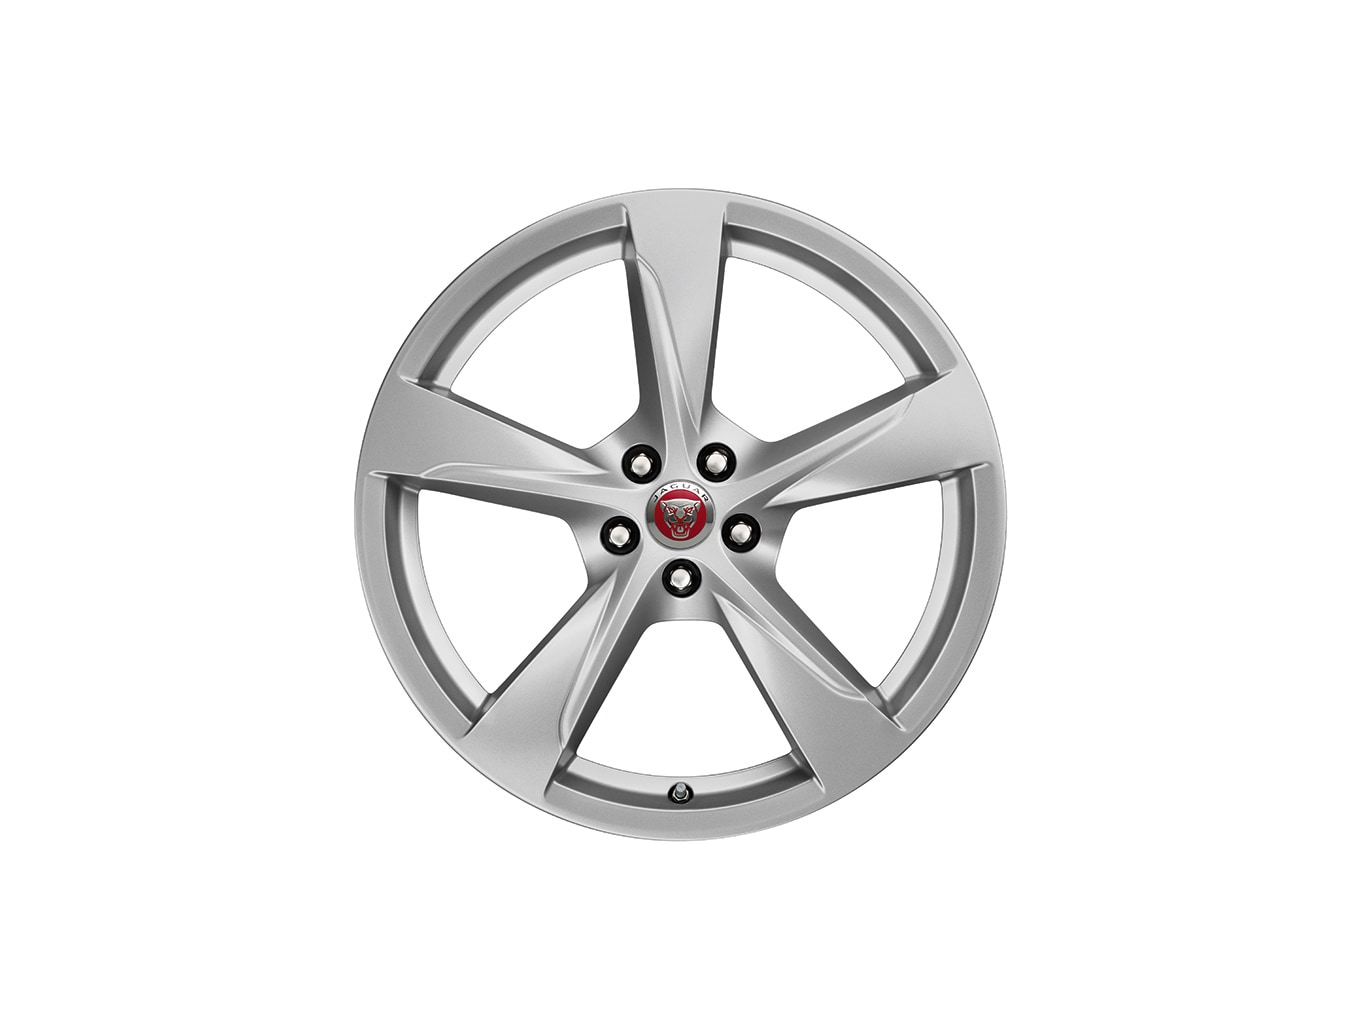 "Alloy Wheel - 20"" Style 5060, 5 spoke, Rear"